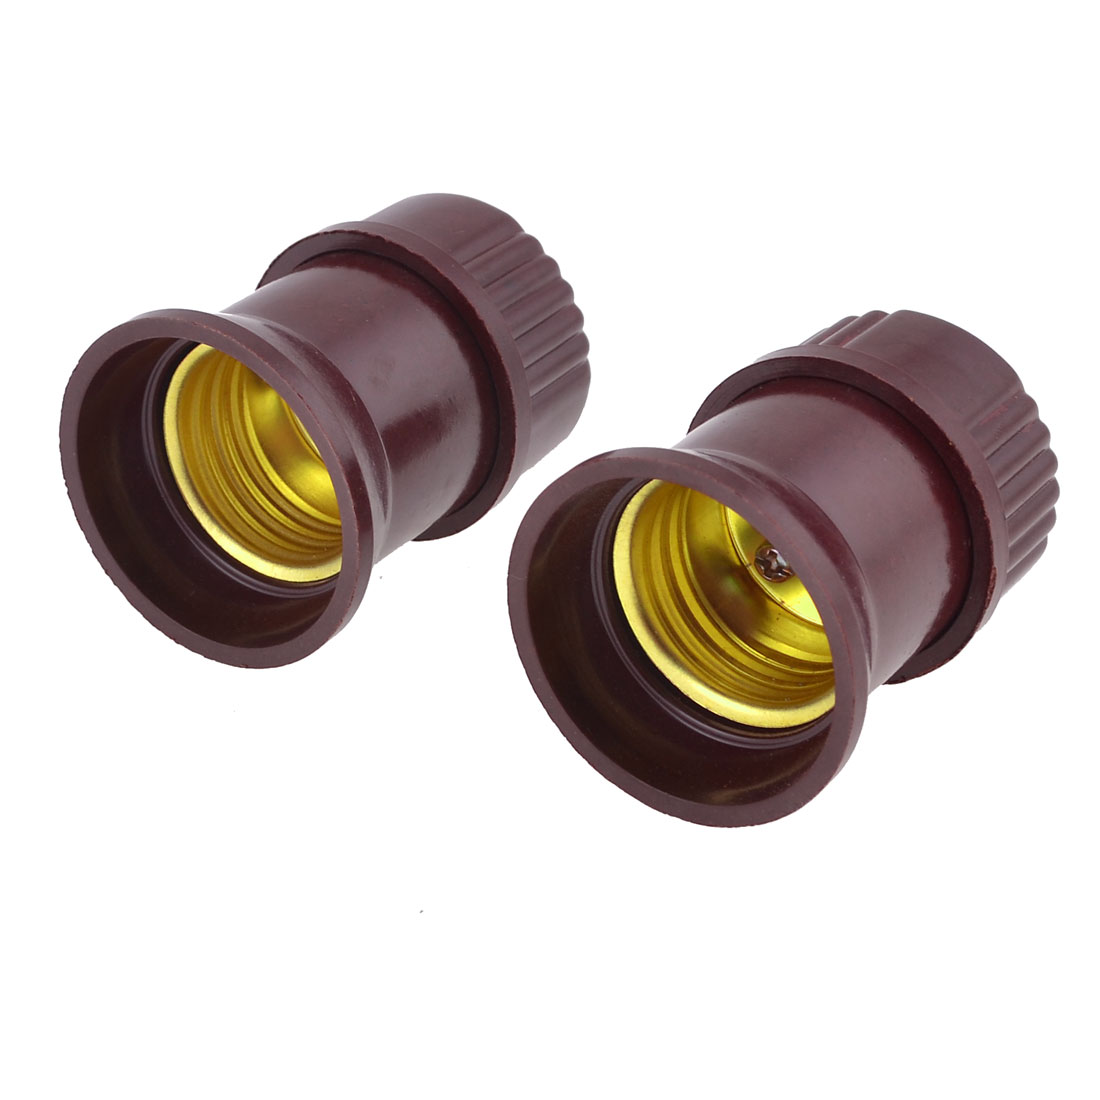 Pair Burgundy Plastic Housing AC 250V 6A E27 Bulb Socket Light Adapter